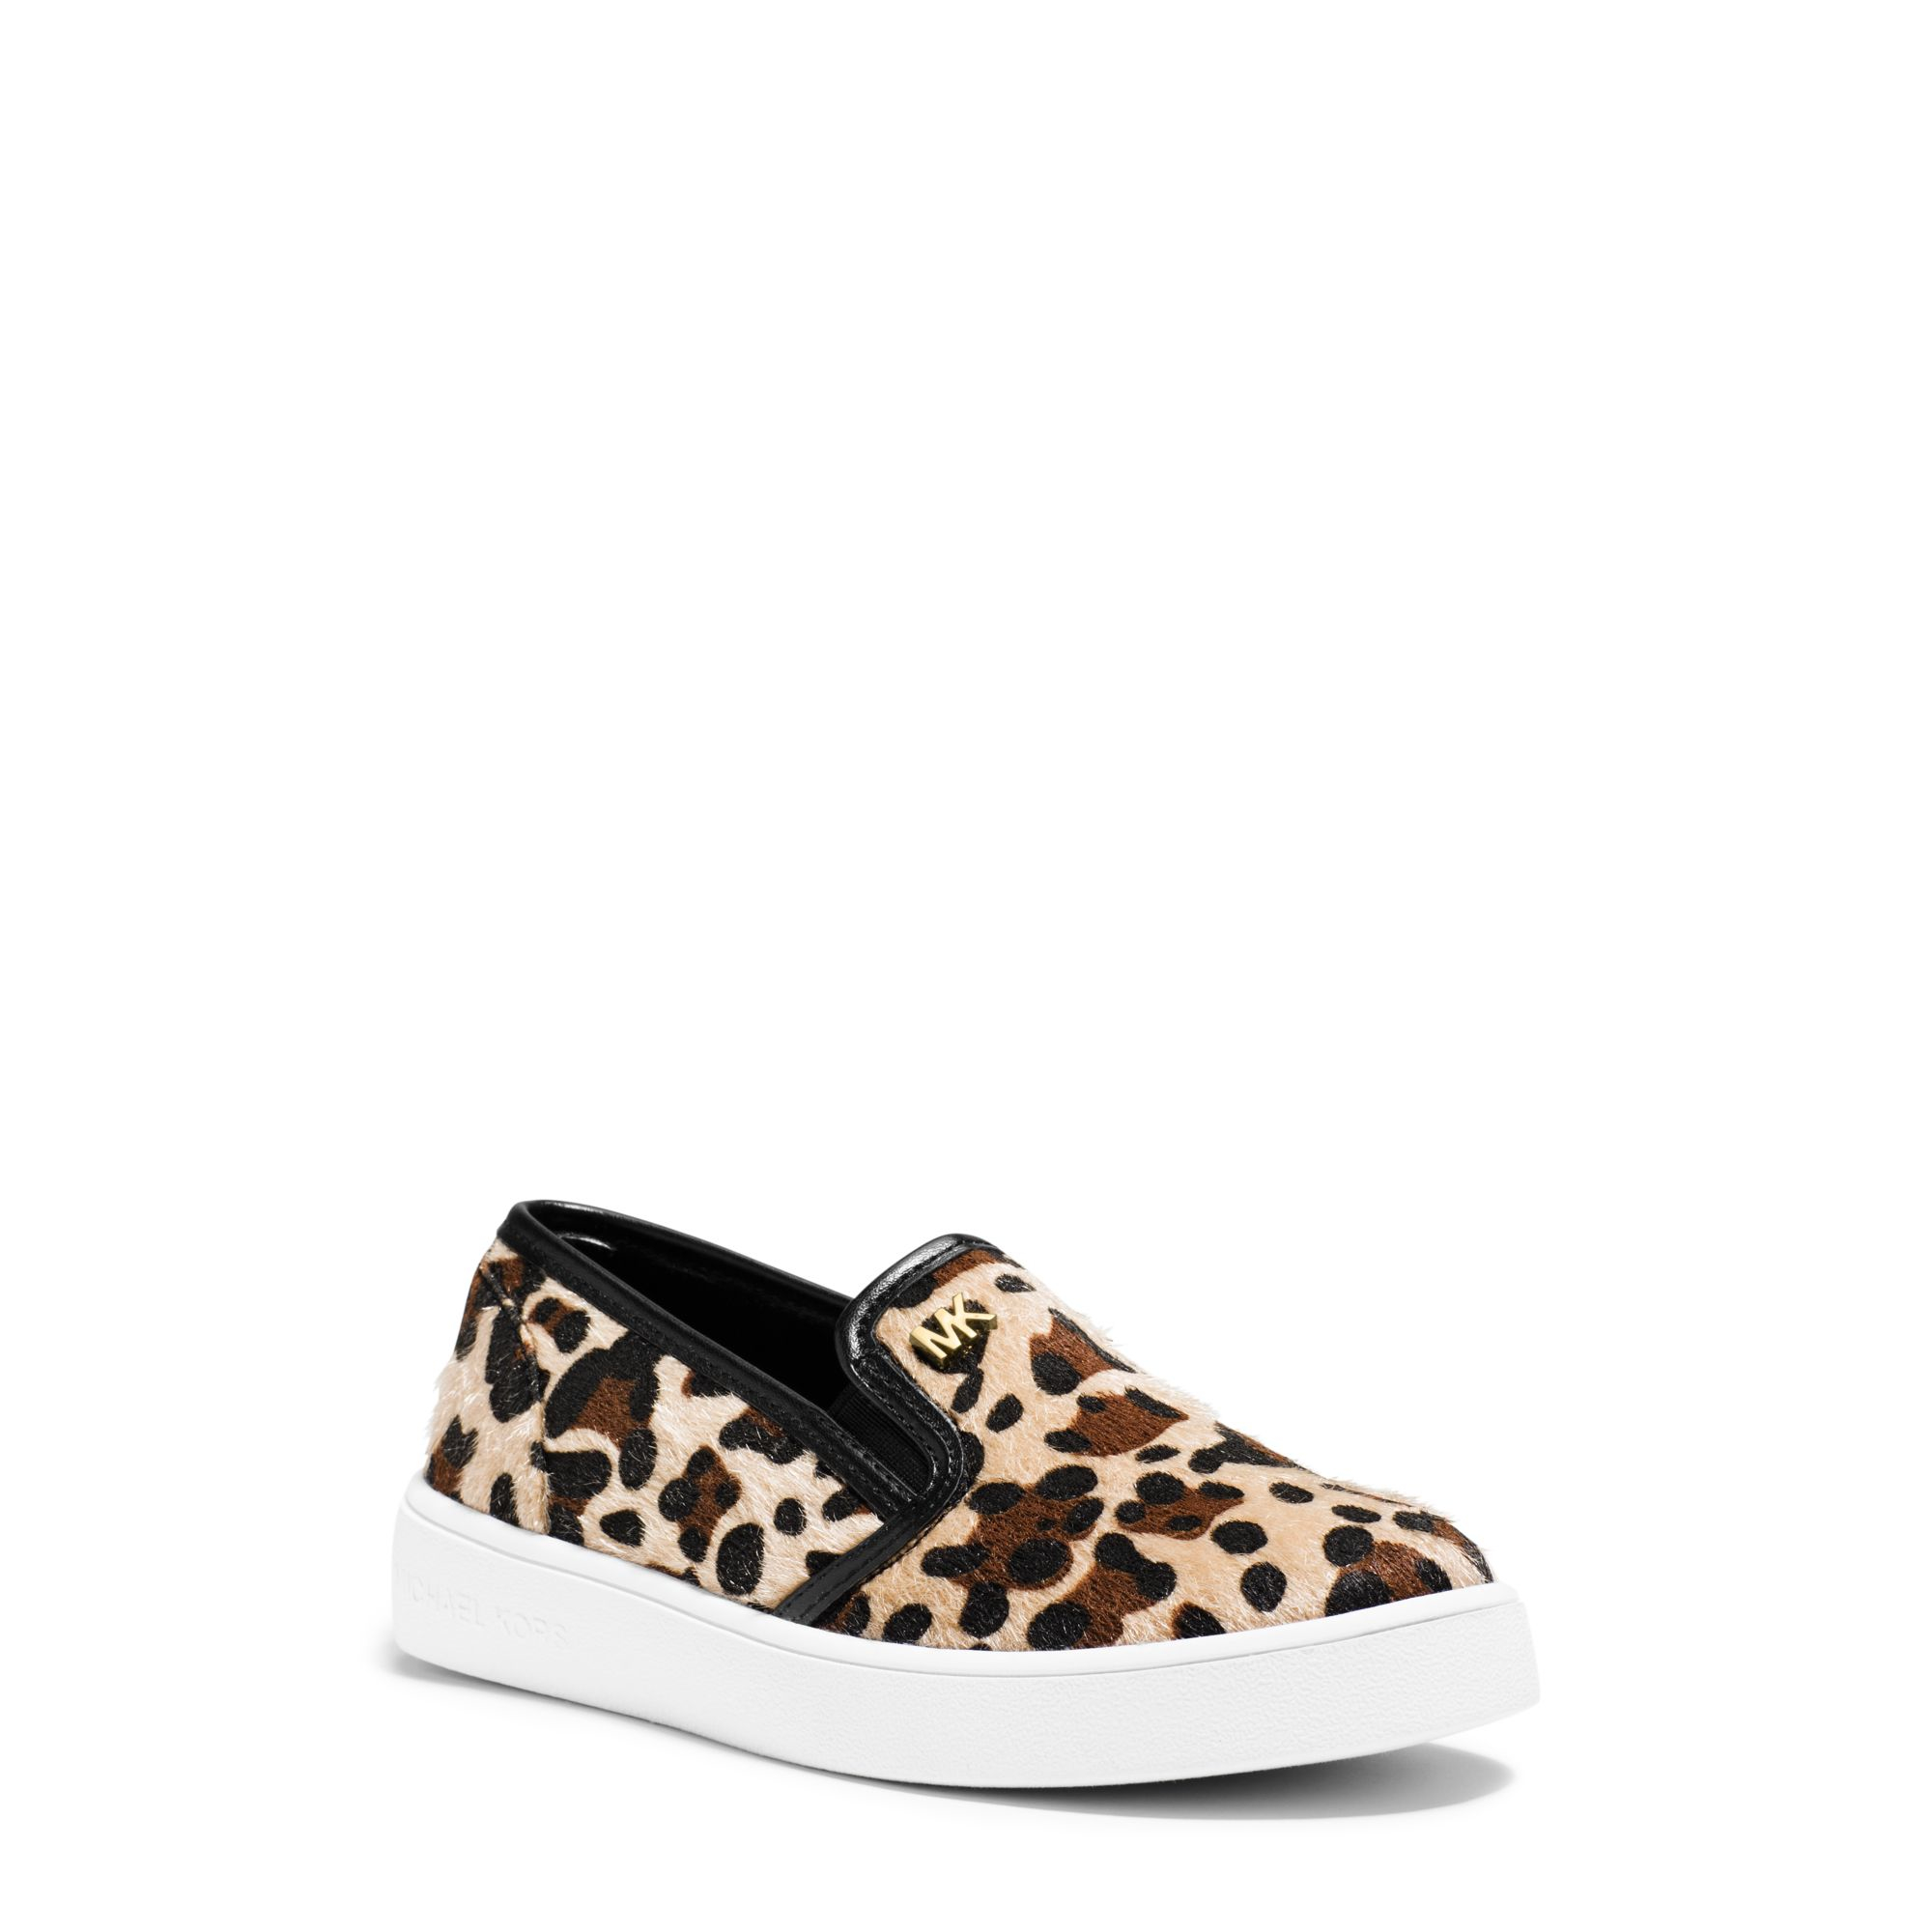 michael kors leopard sneakers 28 images michael michael kors city leopardprint haircalf. Black Bedroom Furniture Sets. Home Design Ideas